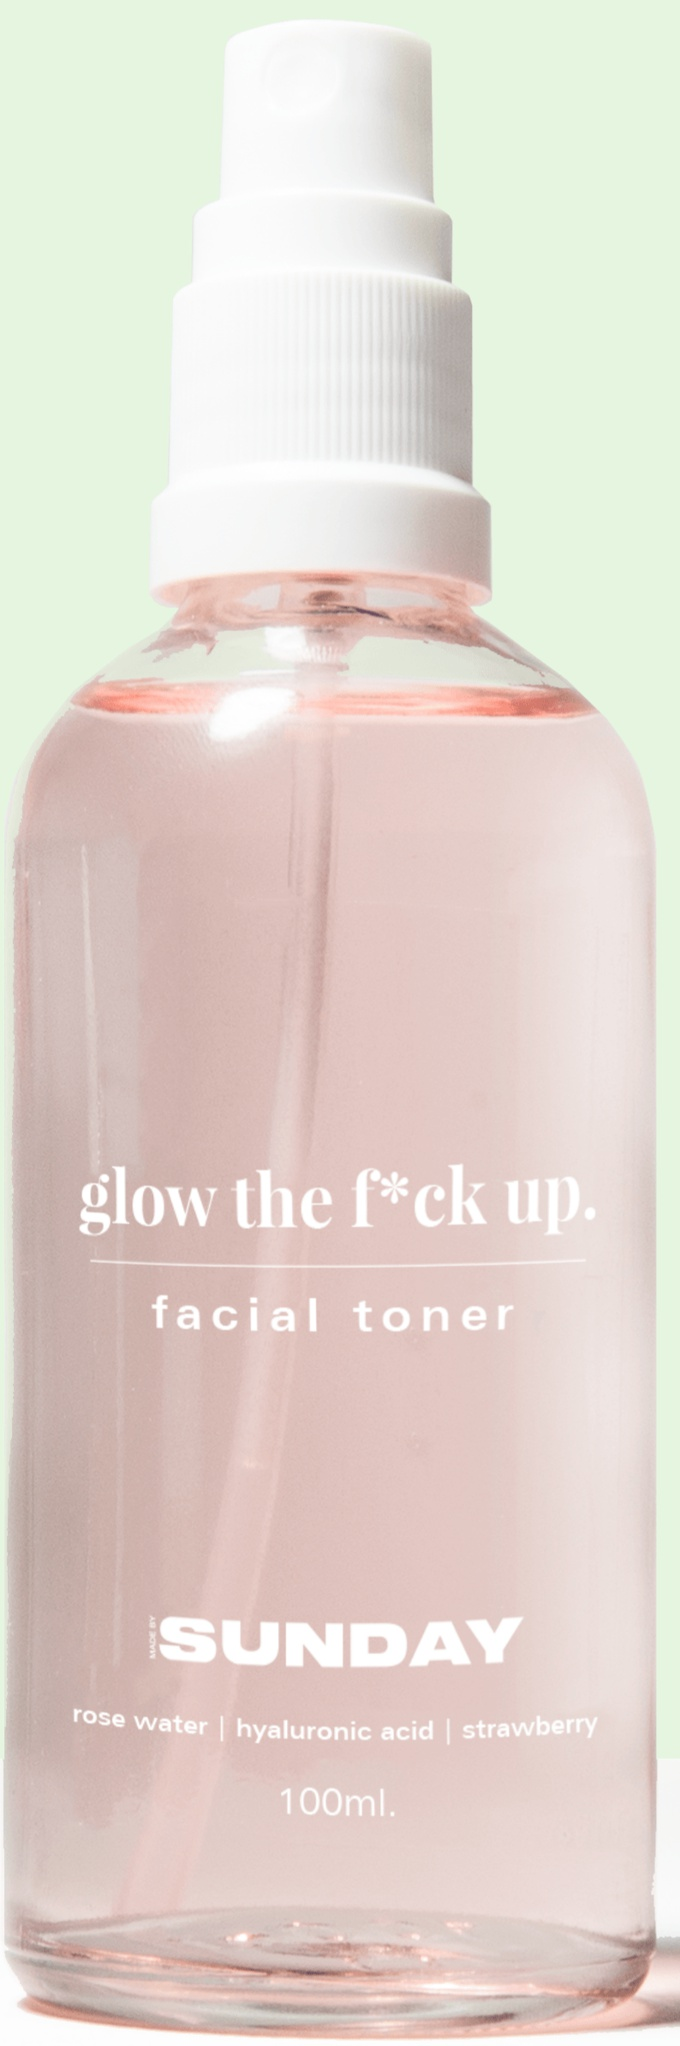 Made by Sunday Glow The F*ck Up Toner